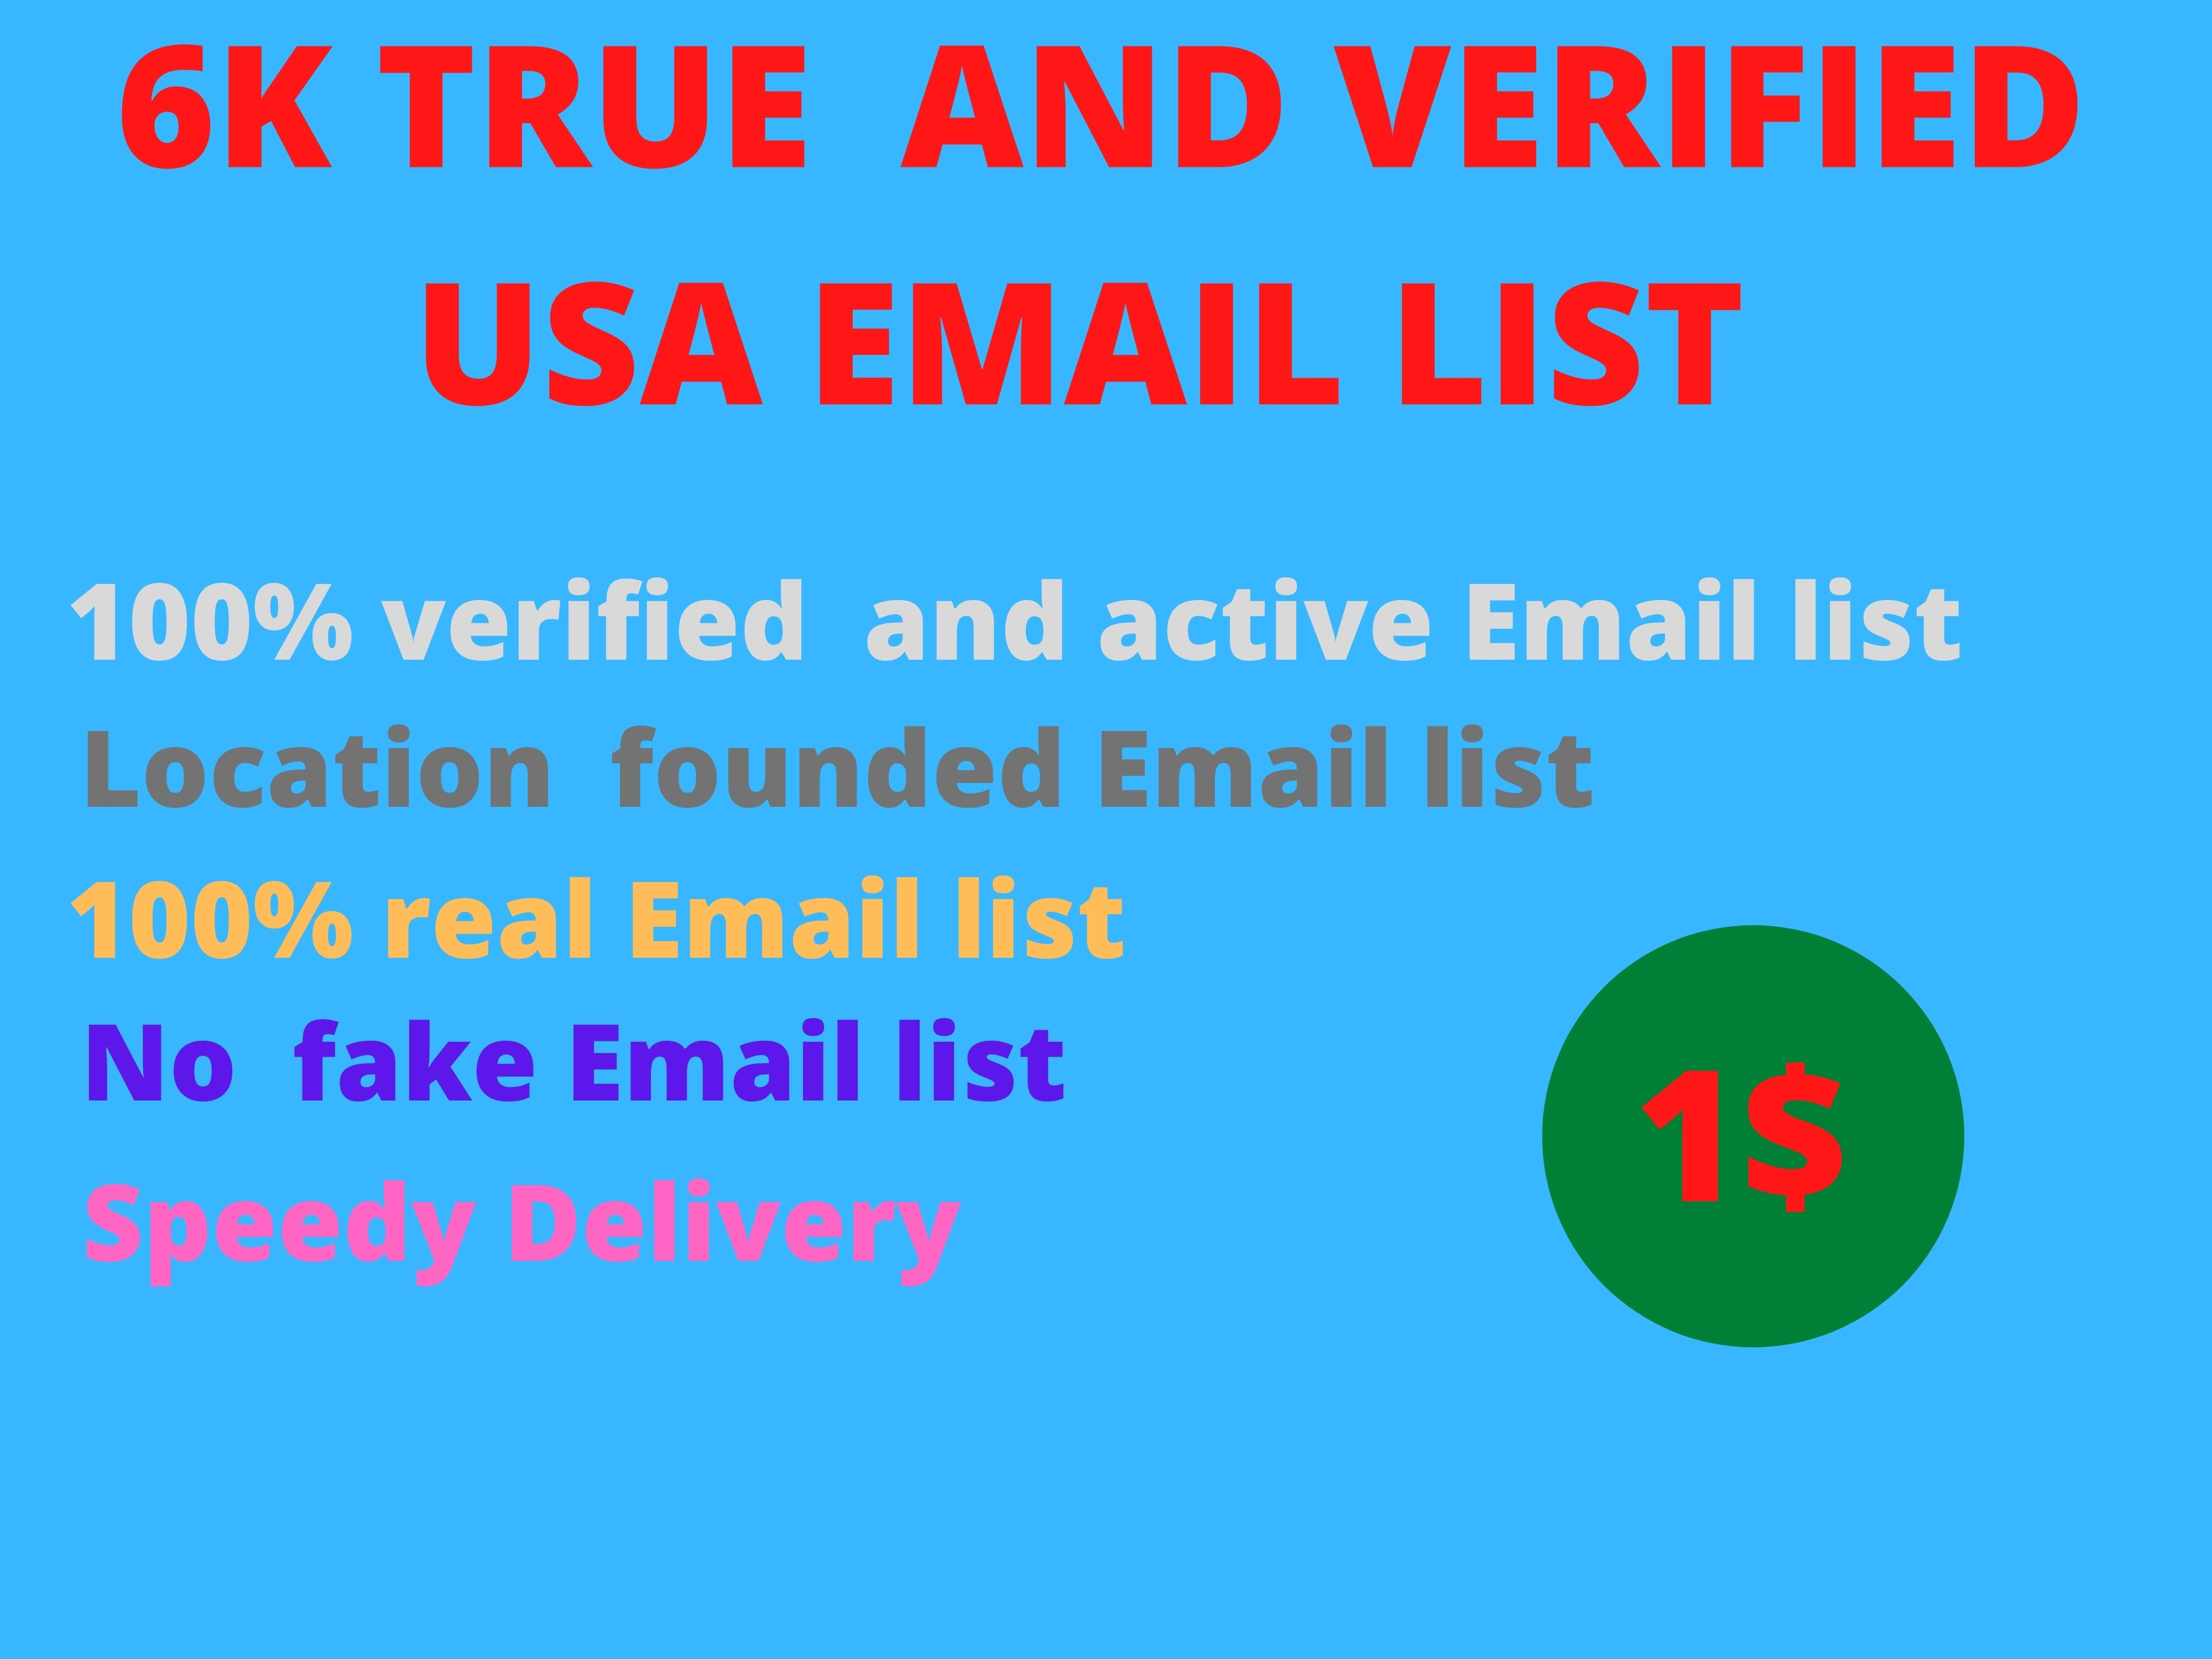 I will present you 6K true and Verified USA Email List.